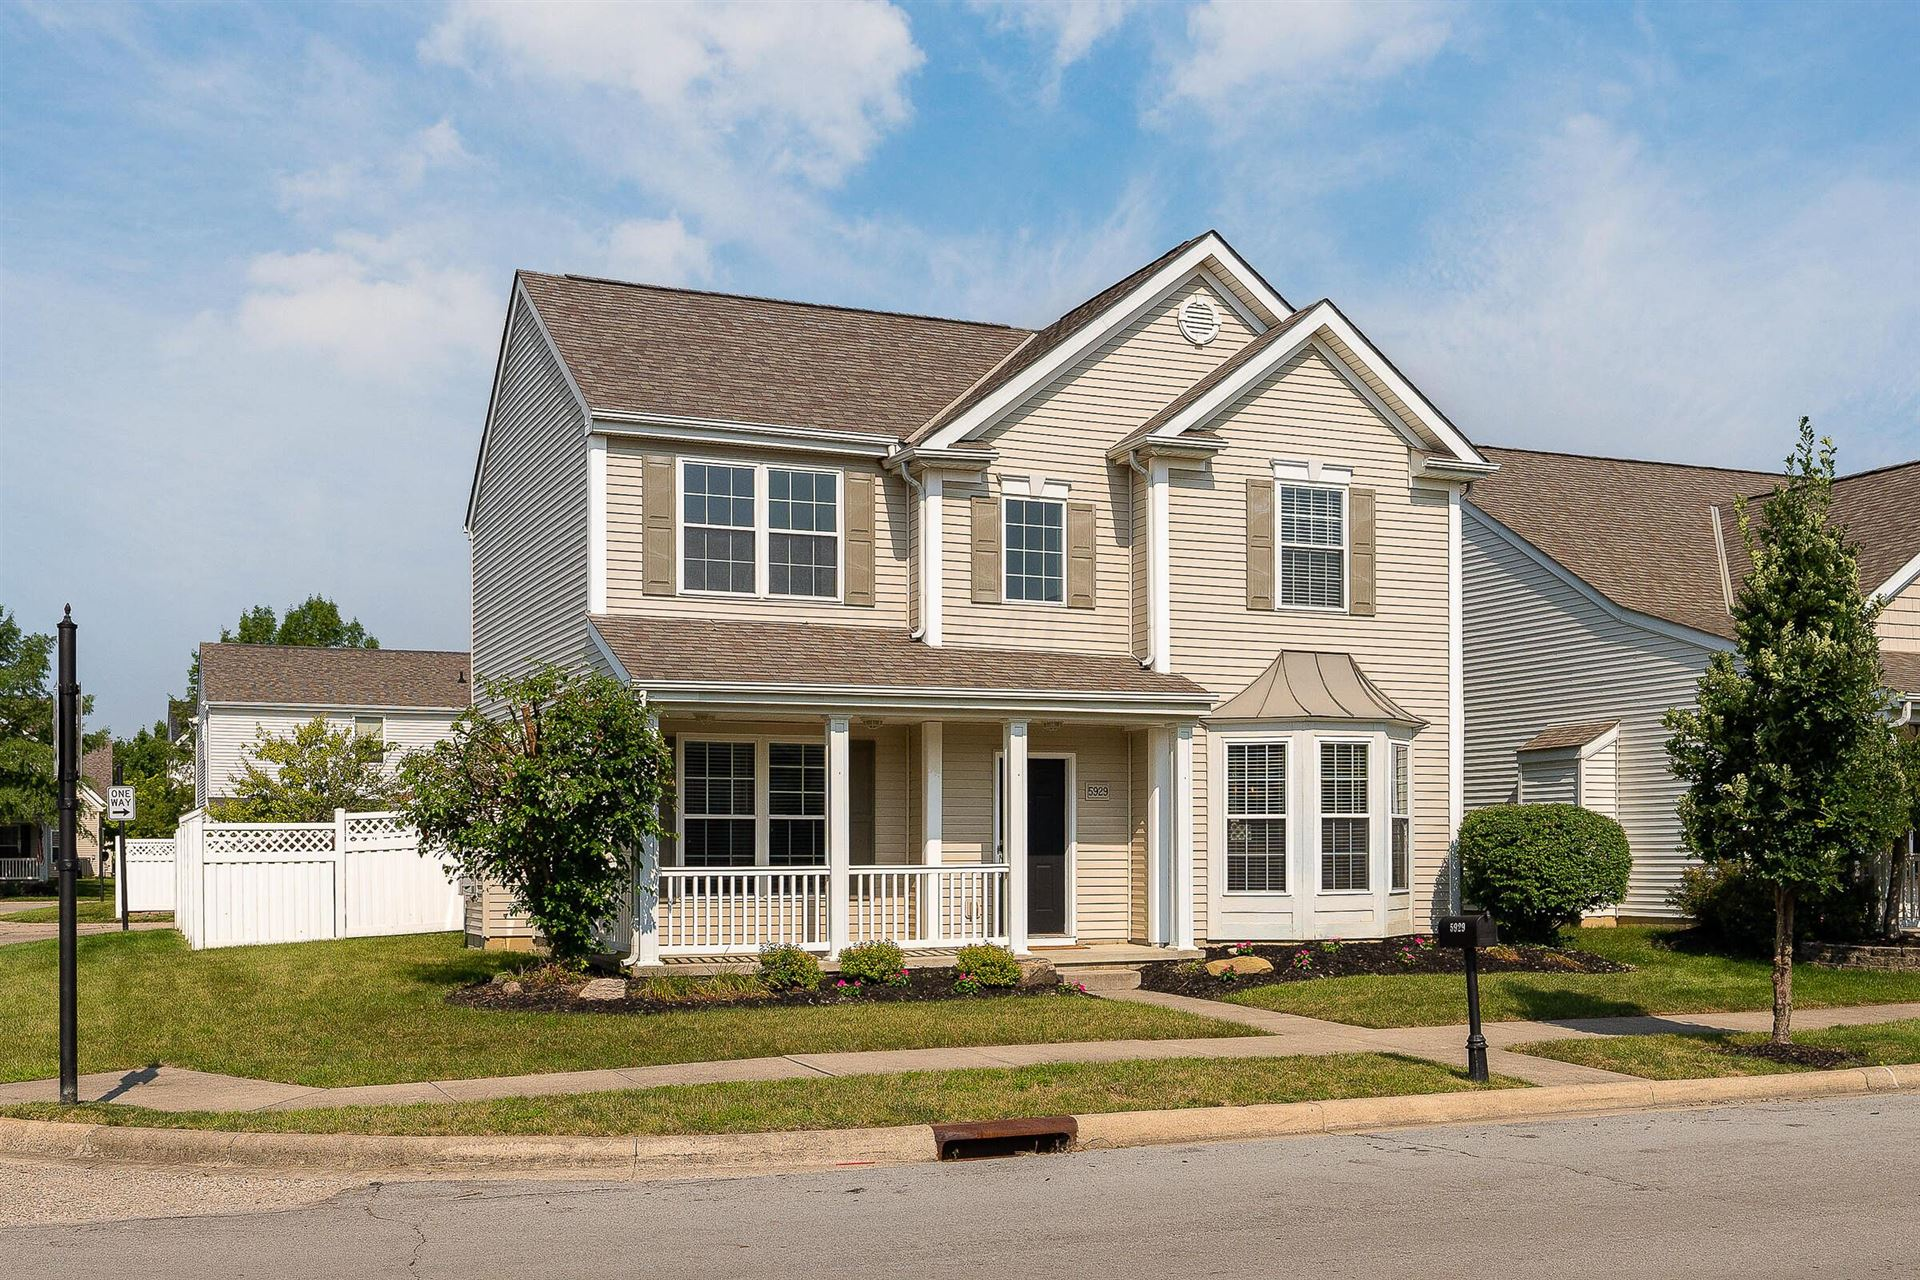 Photo of 5929 Course Drive, Westerville, OH 43081 (MLS # 221028810)